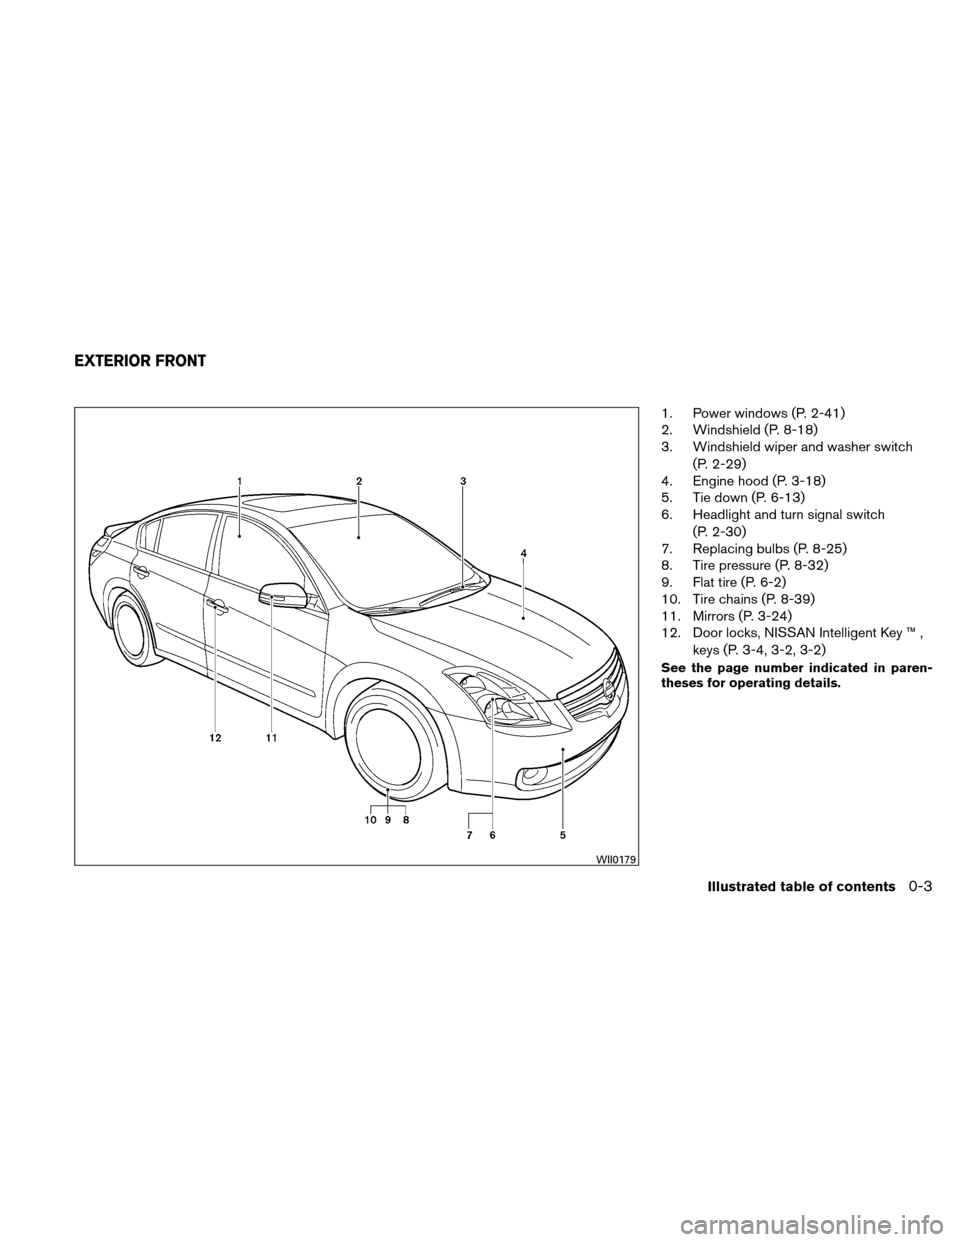 NISSAN ALTIMA HYBRID 2011 L32A / 4.G Owners Manual, Page 22